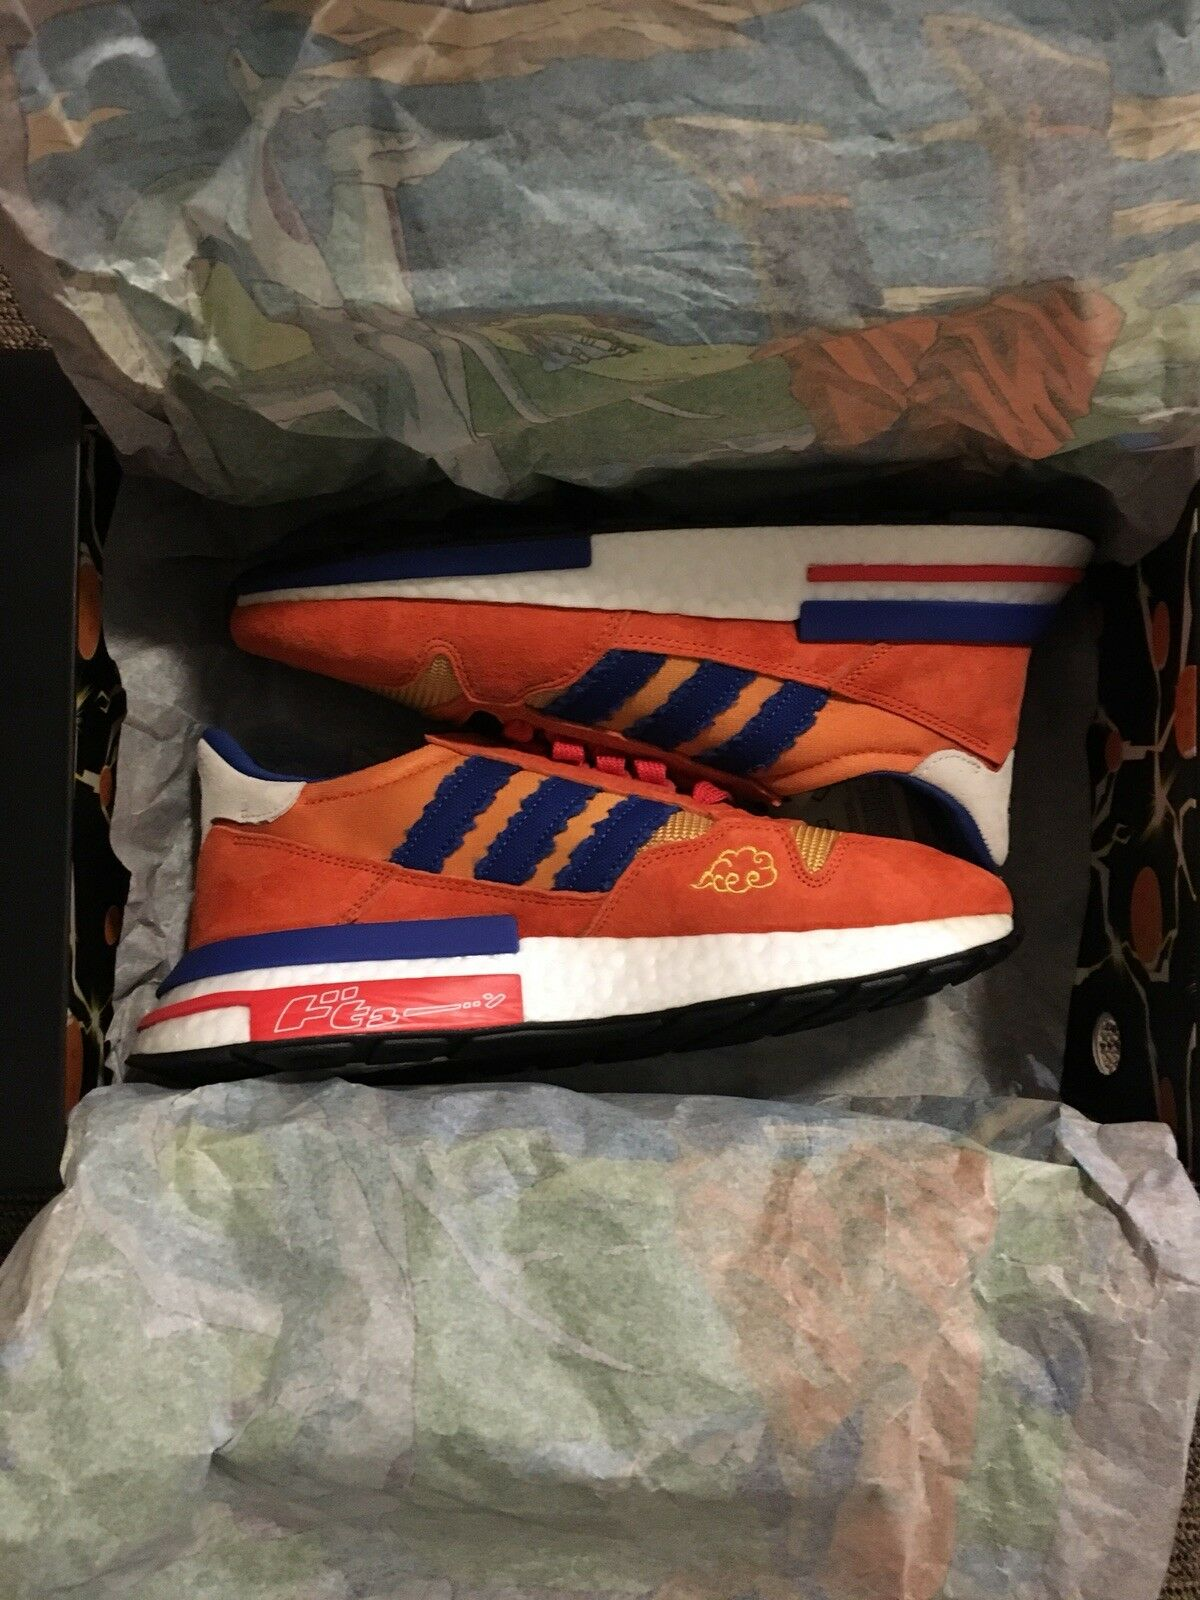 Adidas ZX 500 Son Goku Dragon Ball Size 8